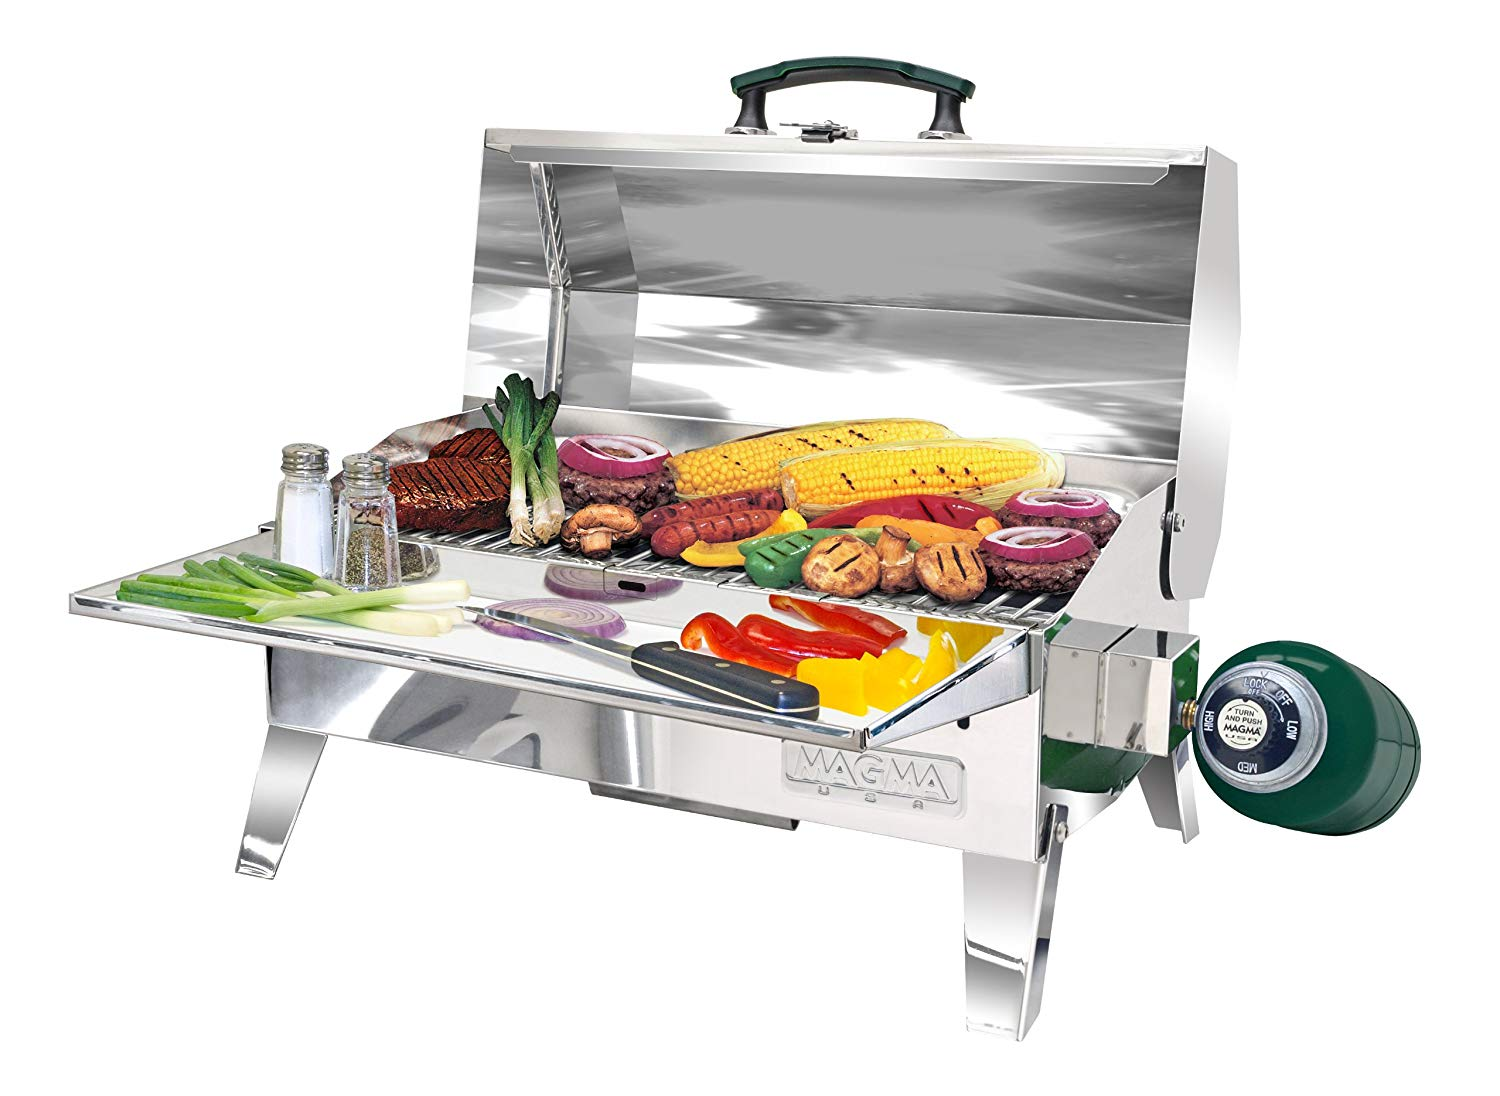 Magma A10-603 Adventurer Series Portable Gas Grill Review